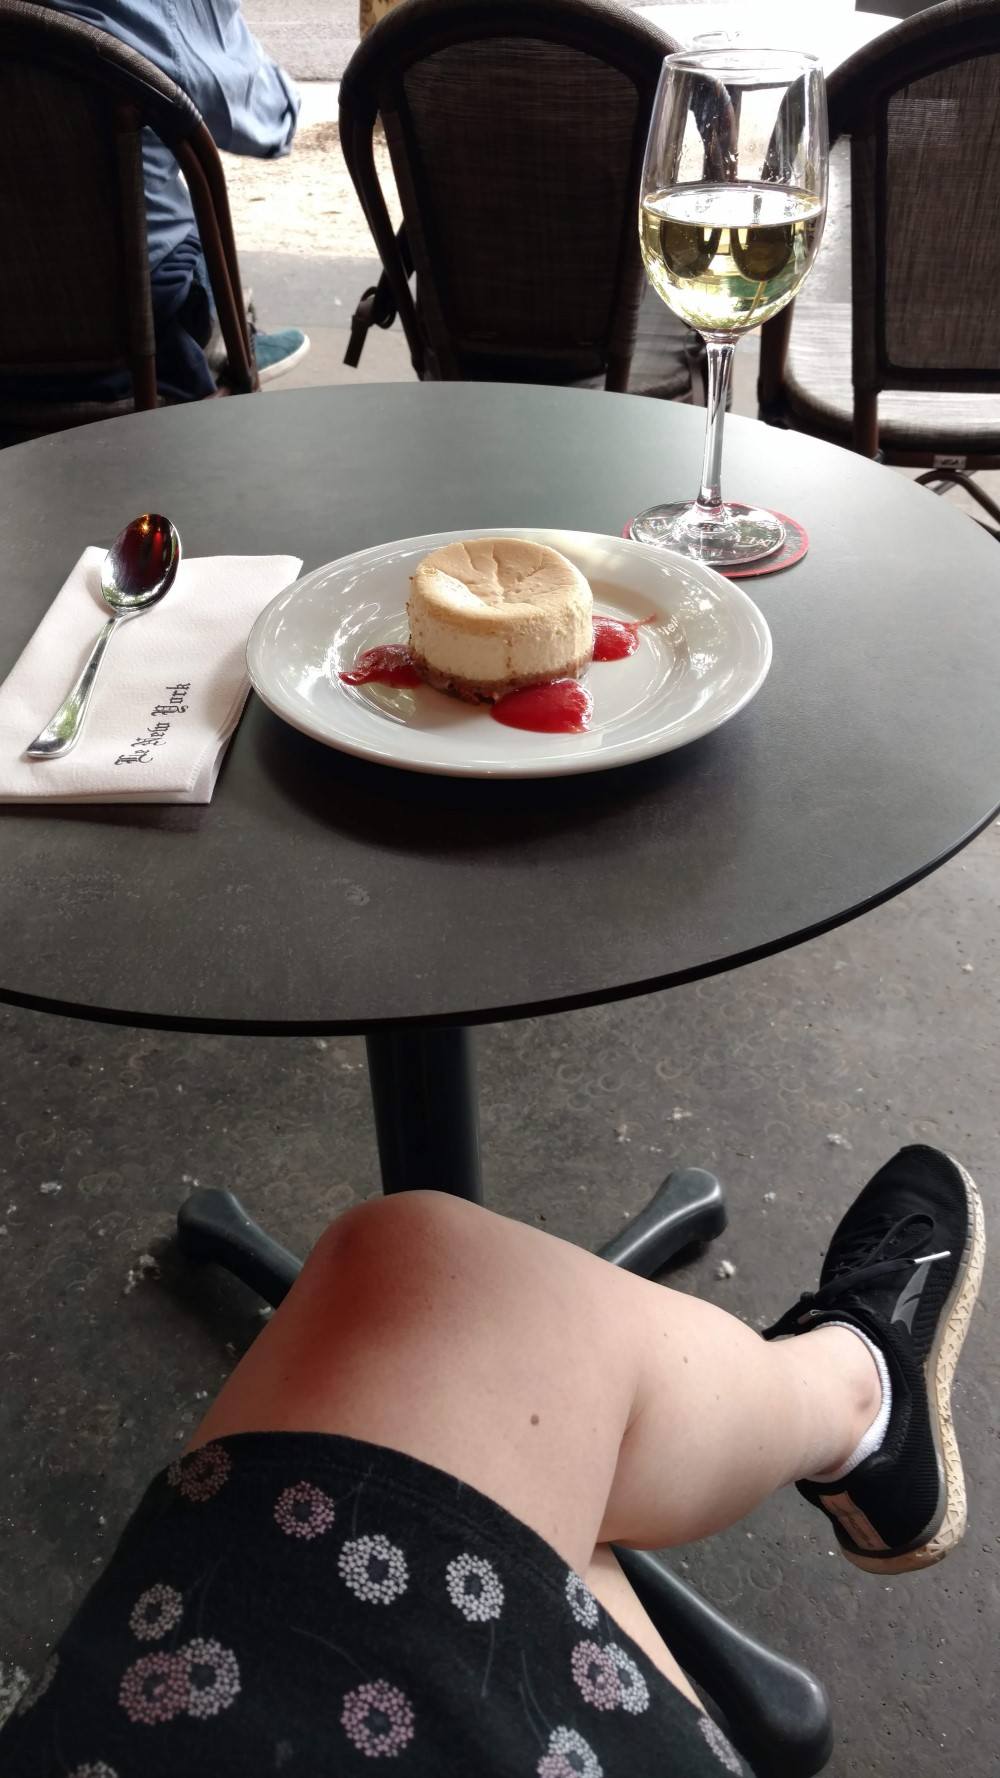 The New York cafe in Paris. On the table, cheesecake and wine. Under the table, comfortable shoes